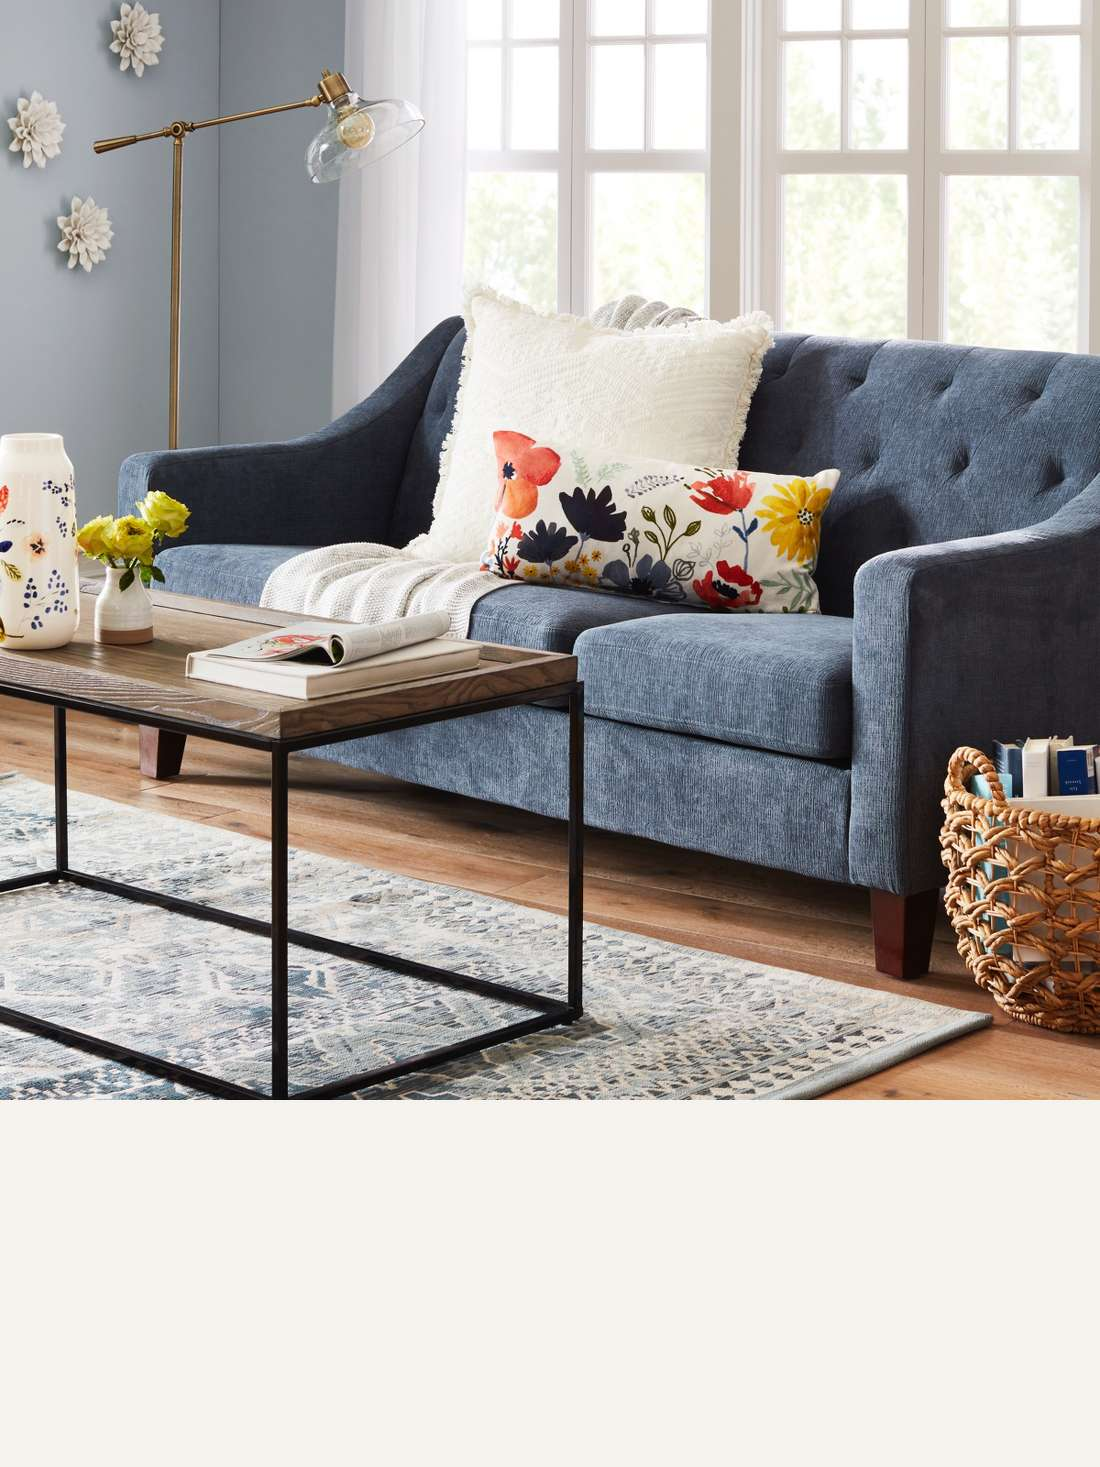 76 Sofas Are Great For Small Es While 89 Ger Can Anchor A Larger Room Browse